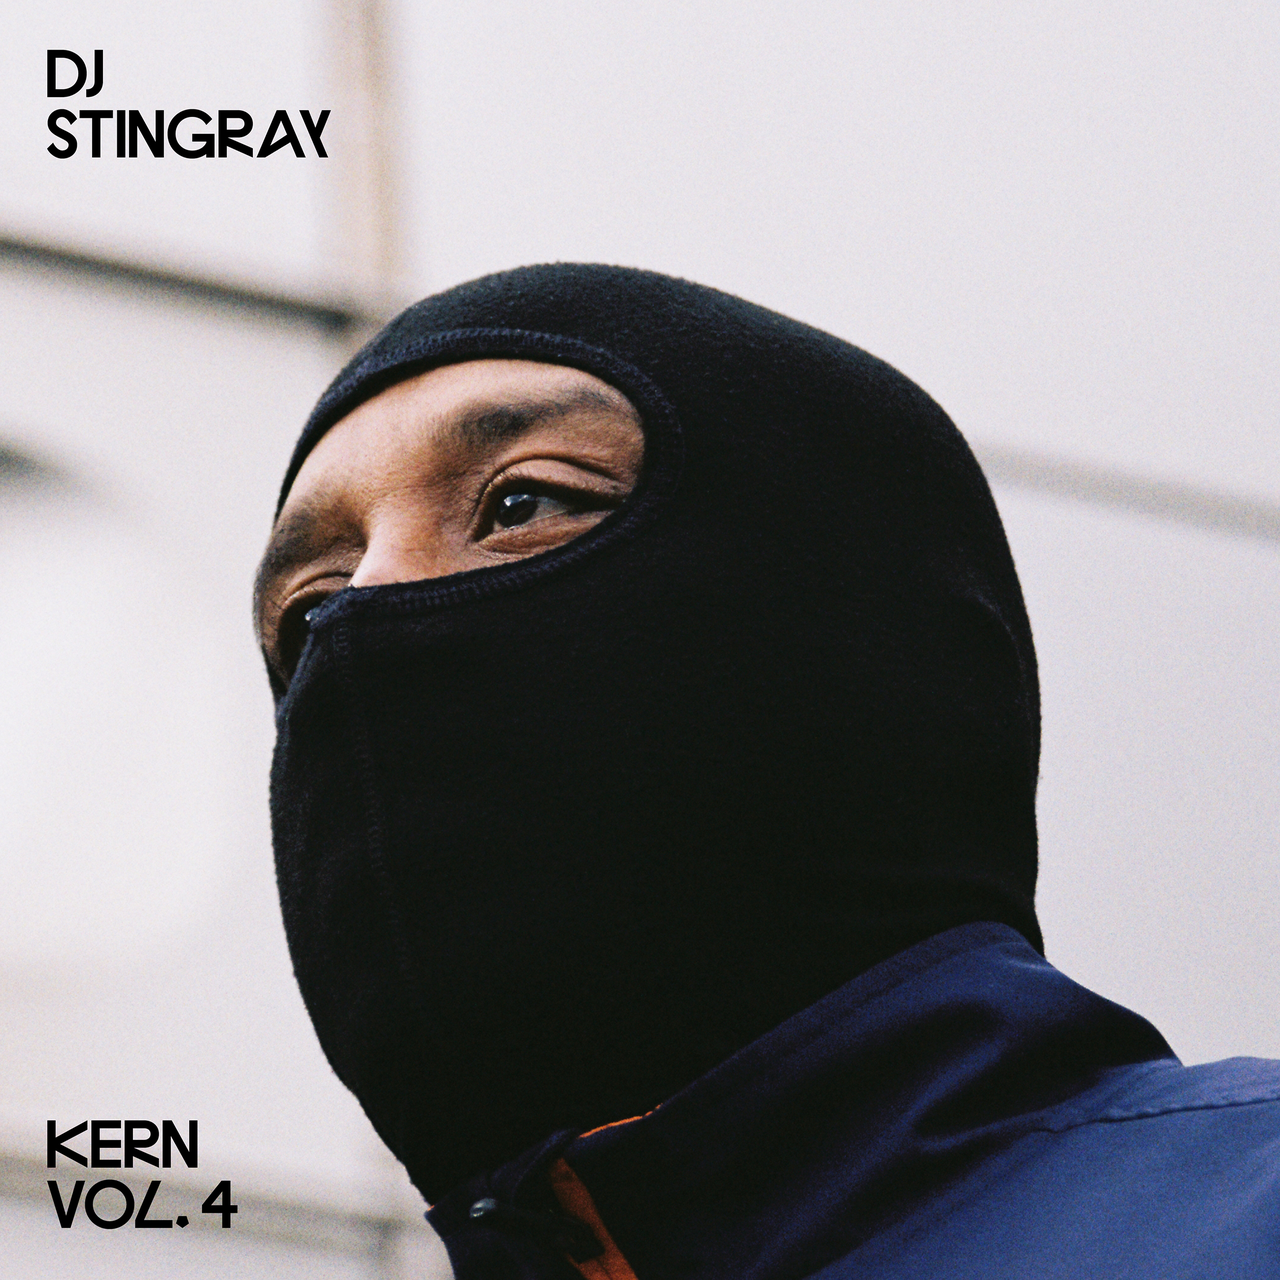 DJ Stingray for Tresor Kern Vol. 4 Compilation